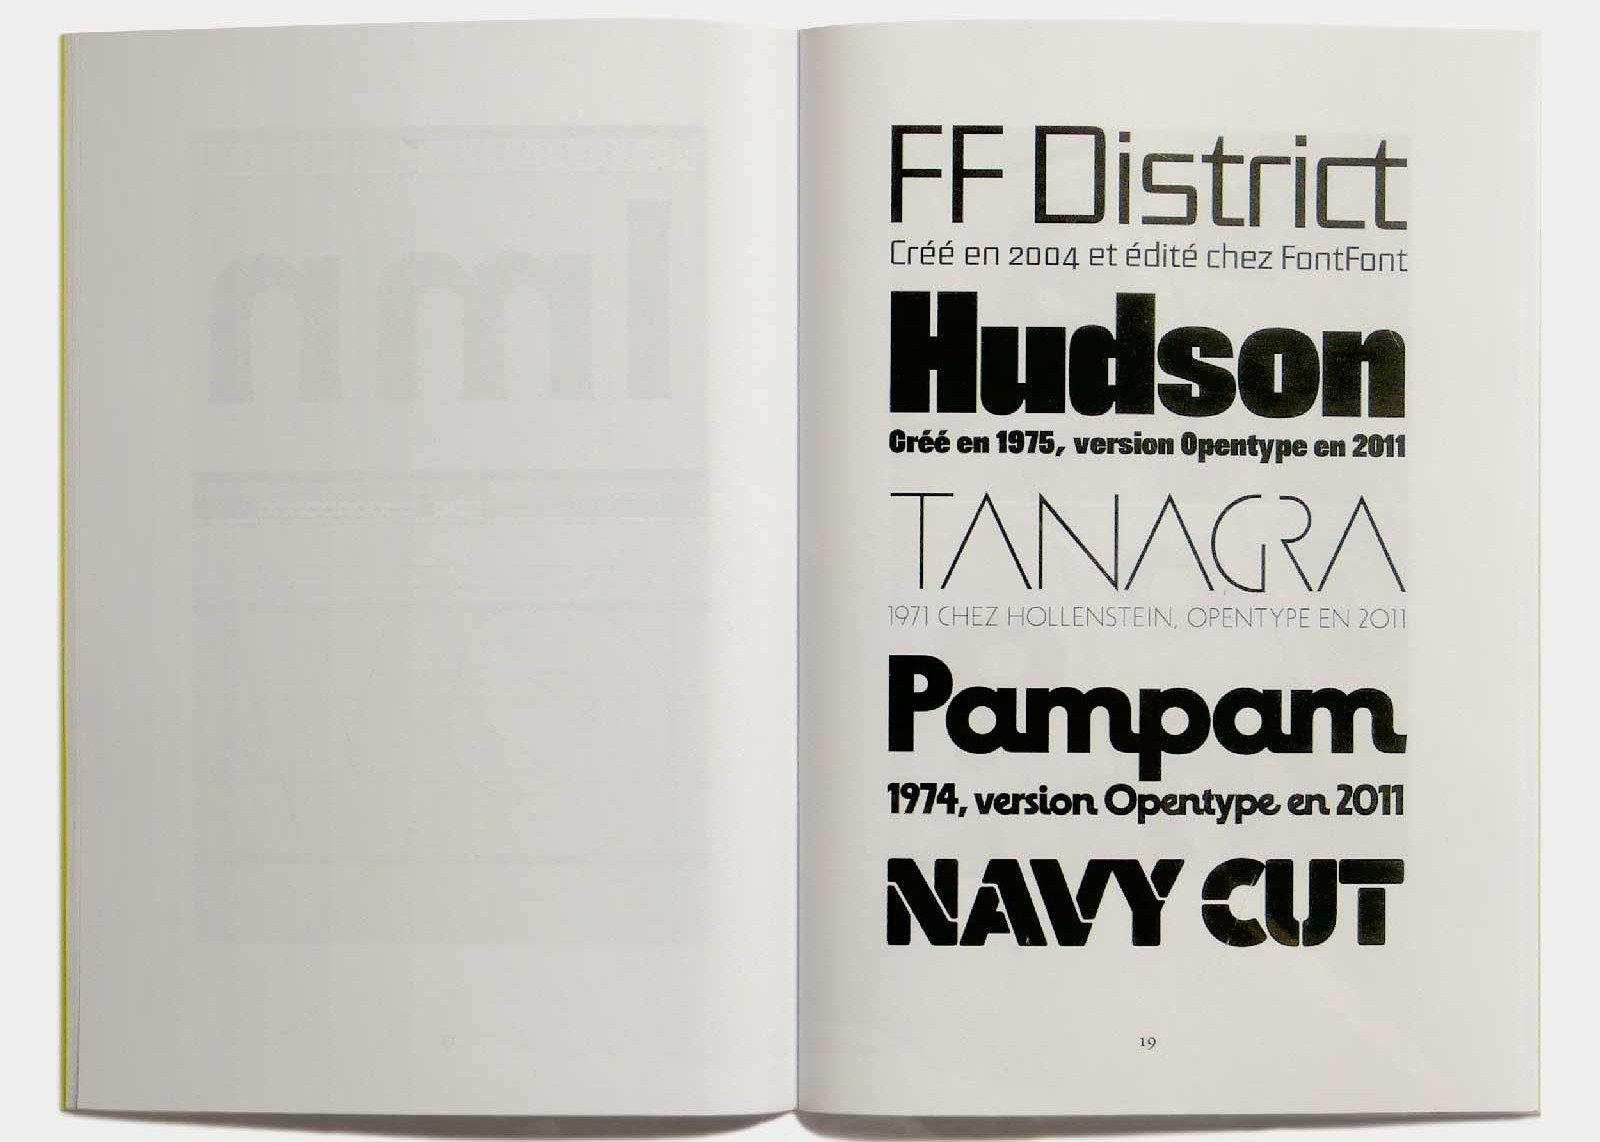 Page 19 — Caractères District (2004, FontFont), Hudson (1975 ; 2011, version OpenType), Tanagra (1971, Hollenstein ; 2011, version OpenType), Pampam (1974, Hollenstein ; 2011, version OpenType), Navy Cut (1971, Hollenstein ; 1986, Mecanorma ; 2011, version OpenType).